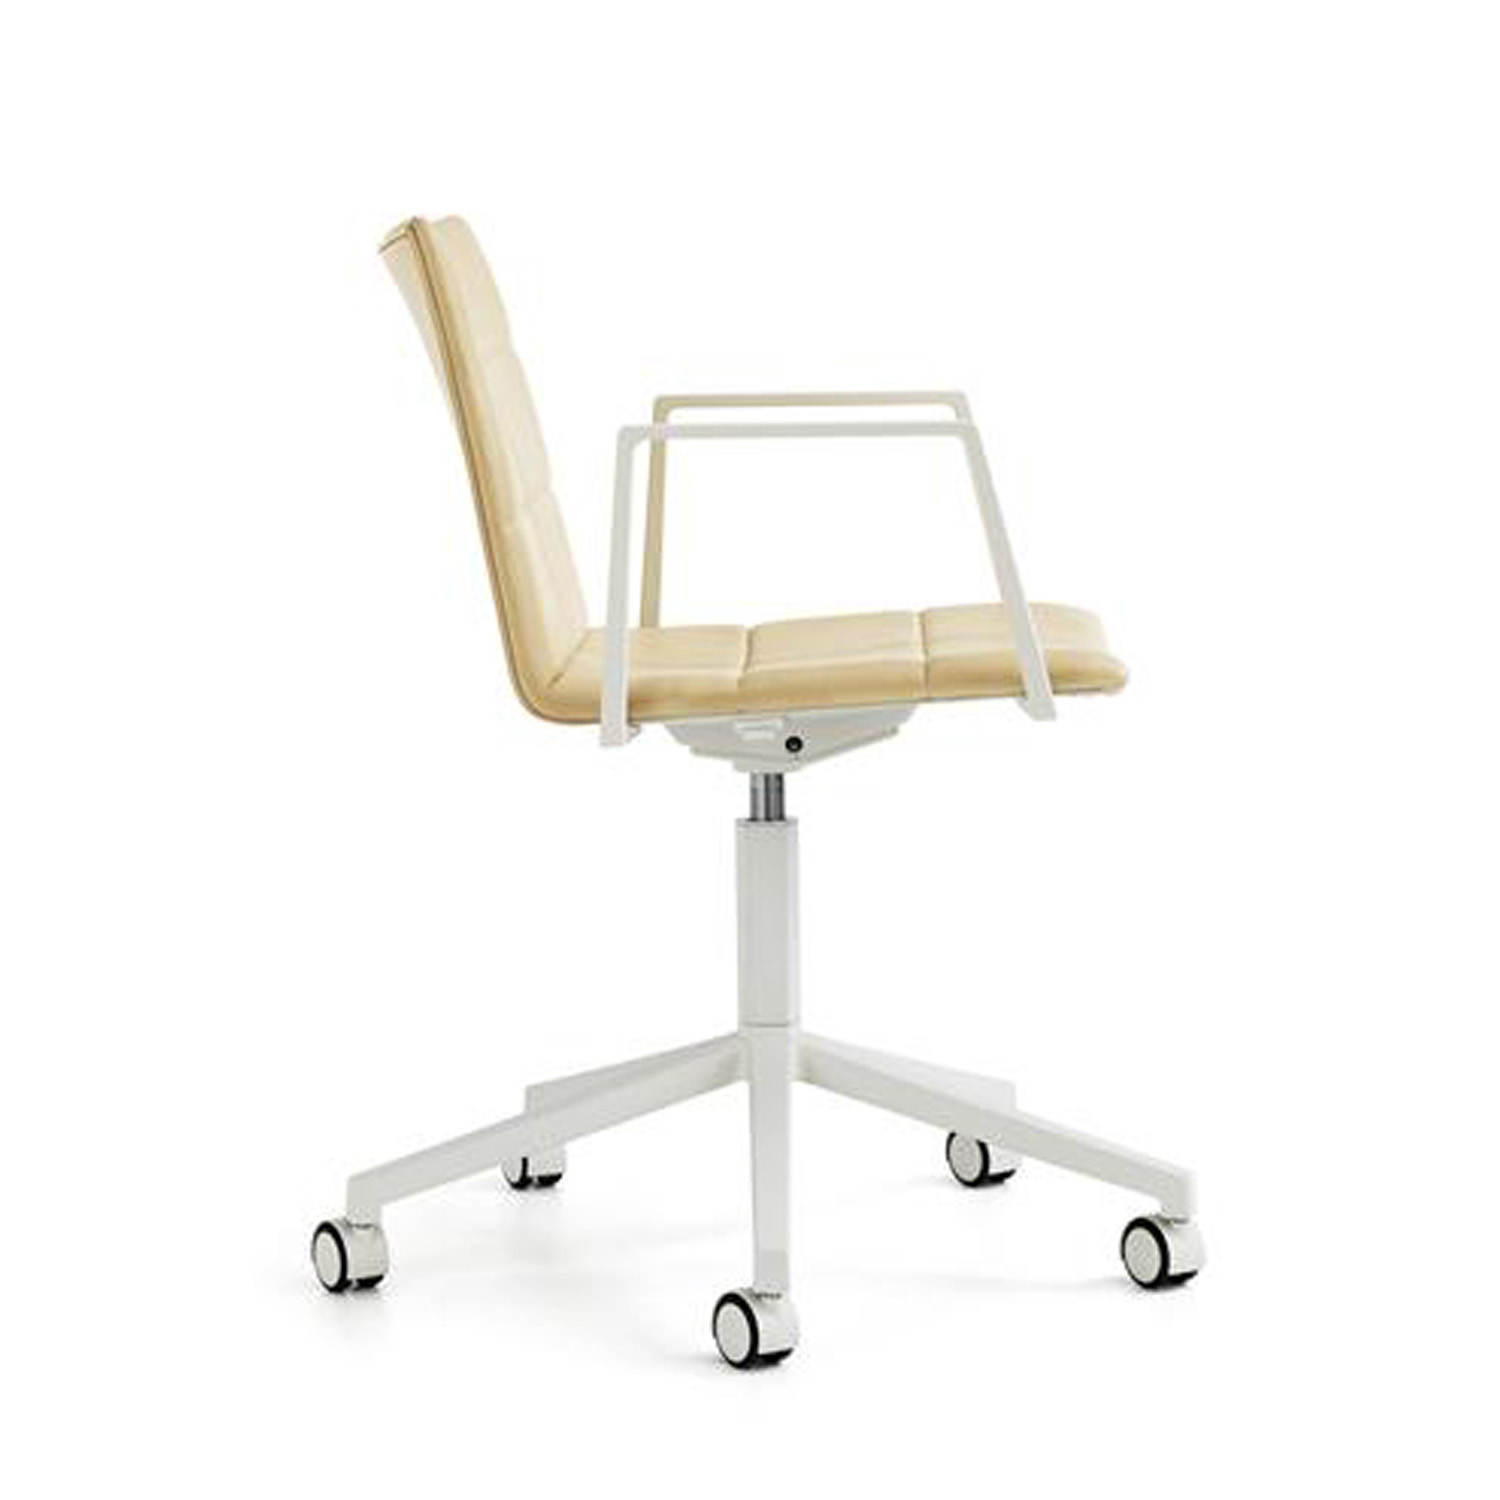 Archal Visitors Chair from Lammhults